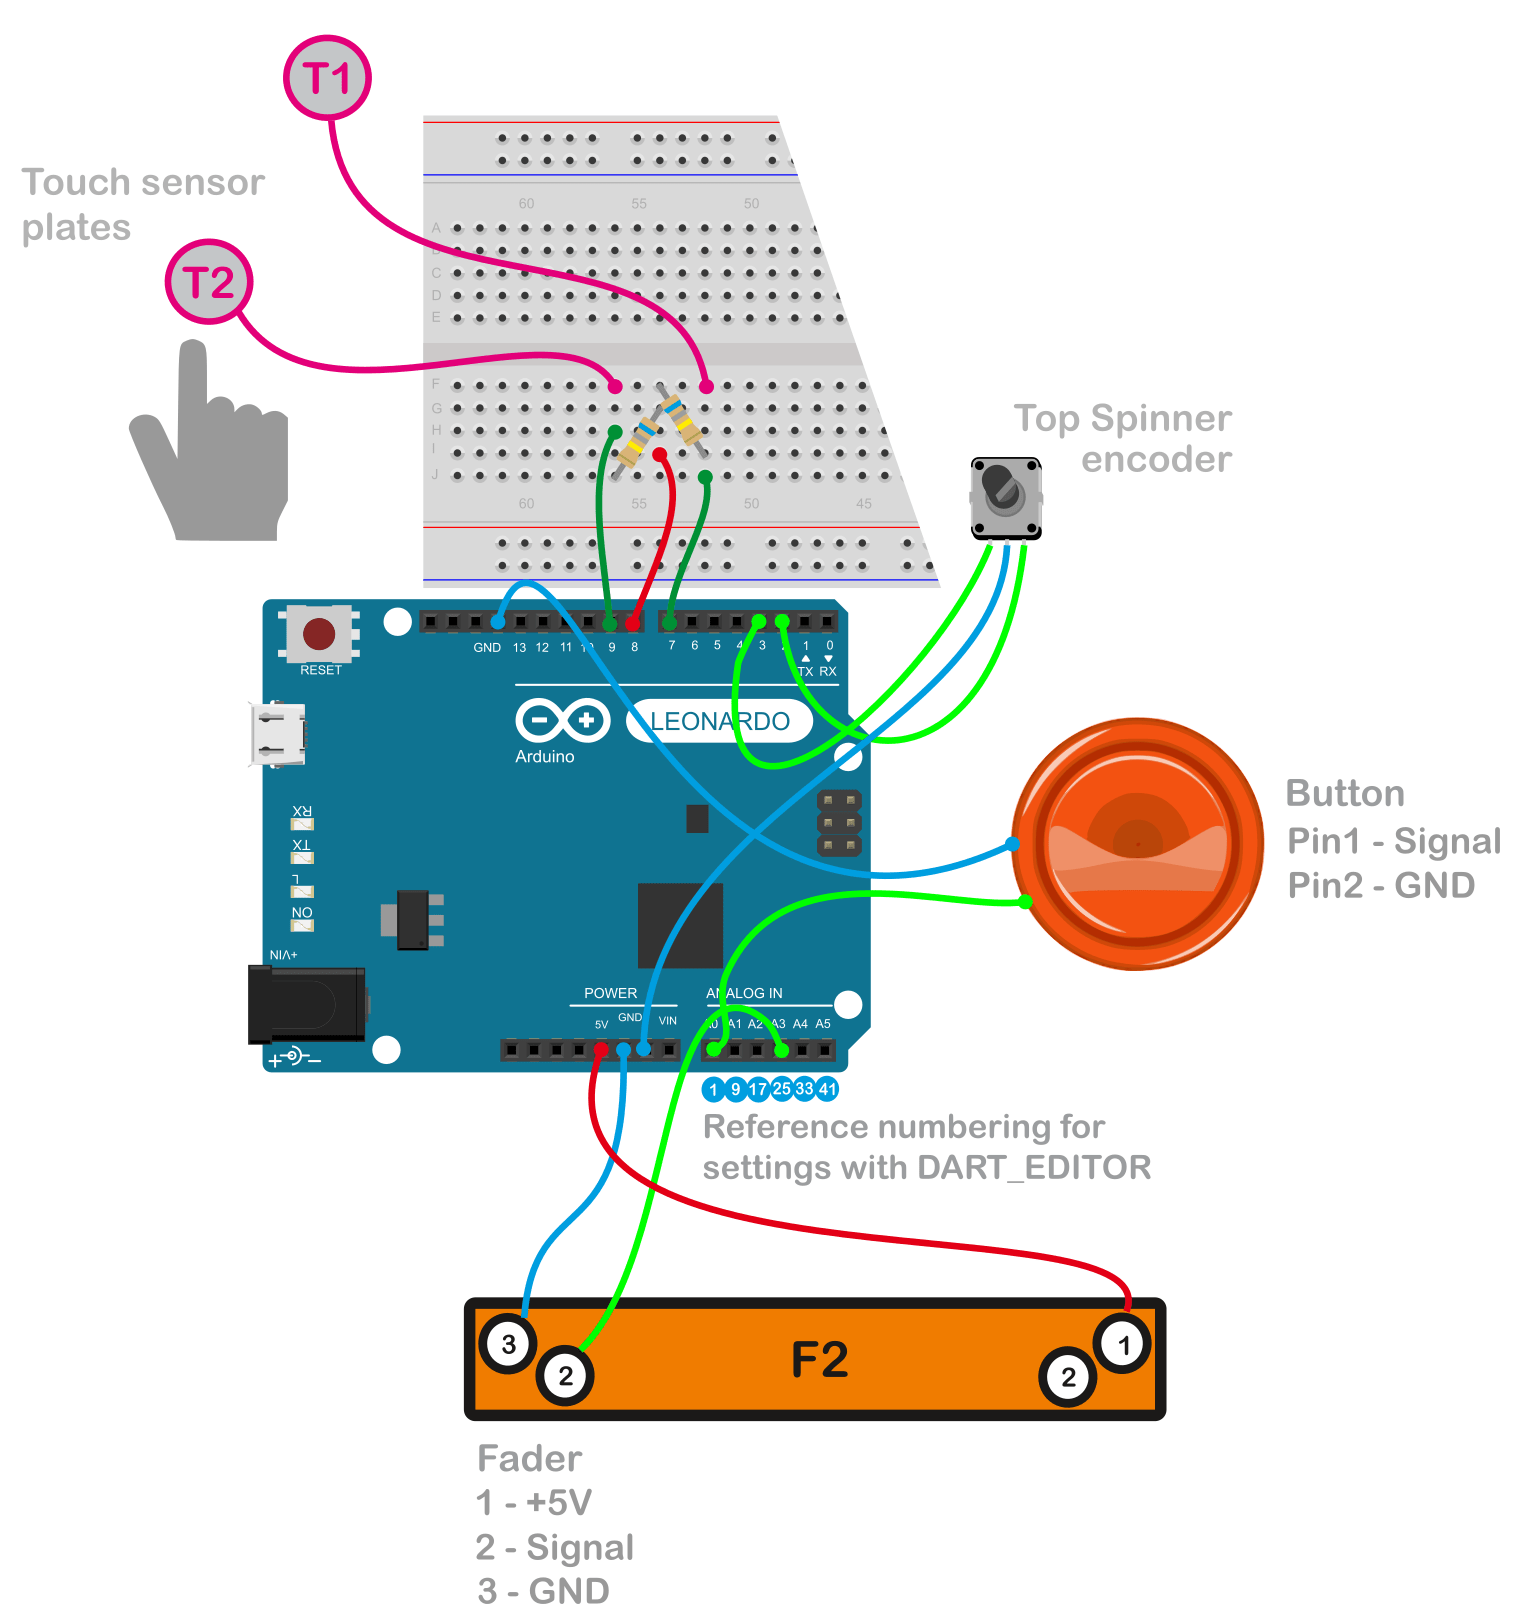 hight resolution of  the 6 analog inputs a0 a1 a2 a3 a4 a5 of the arduino board it is also possible to add the main encoder connected to digital inputs 2 and 3